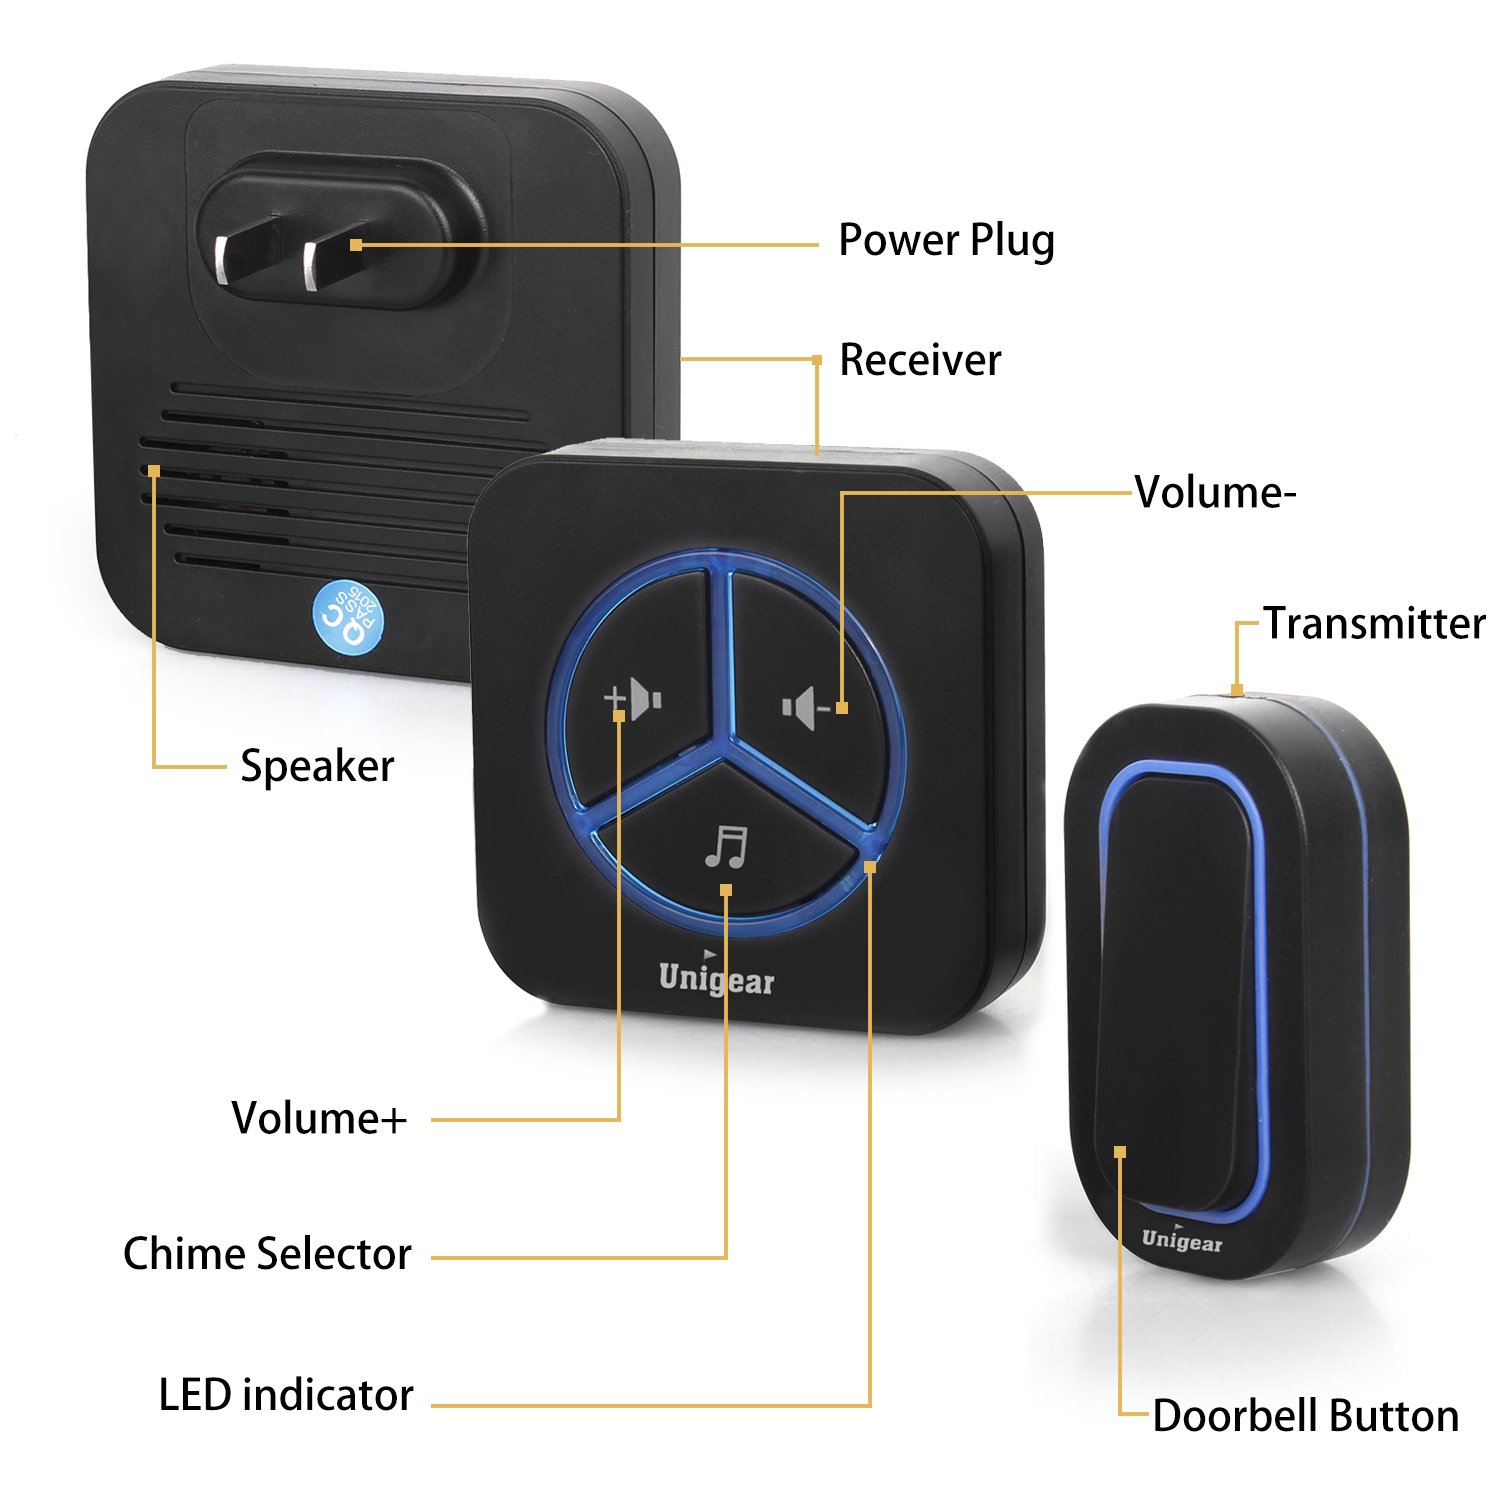 Wireless Doorbell Operating at 900 Feet Long Range with 48 Chimes